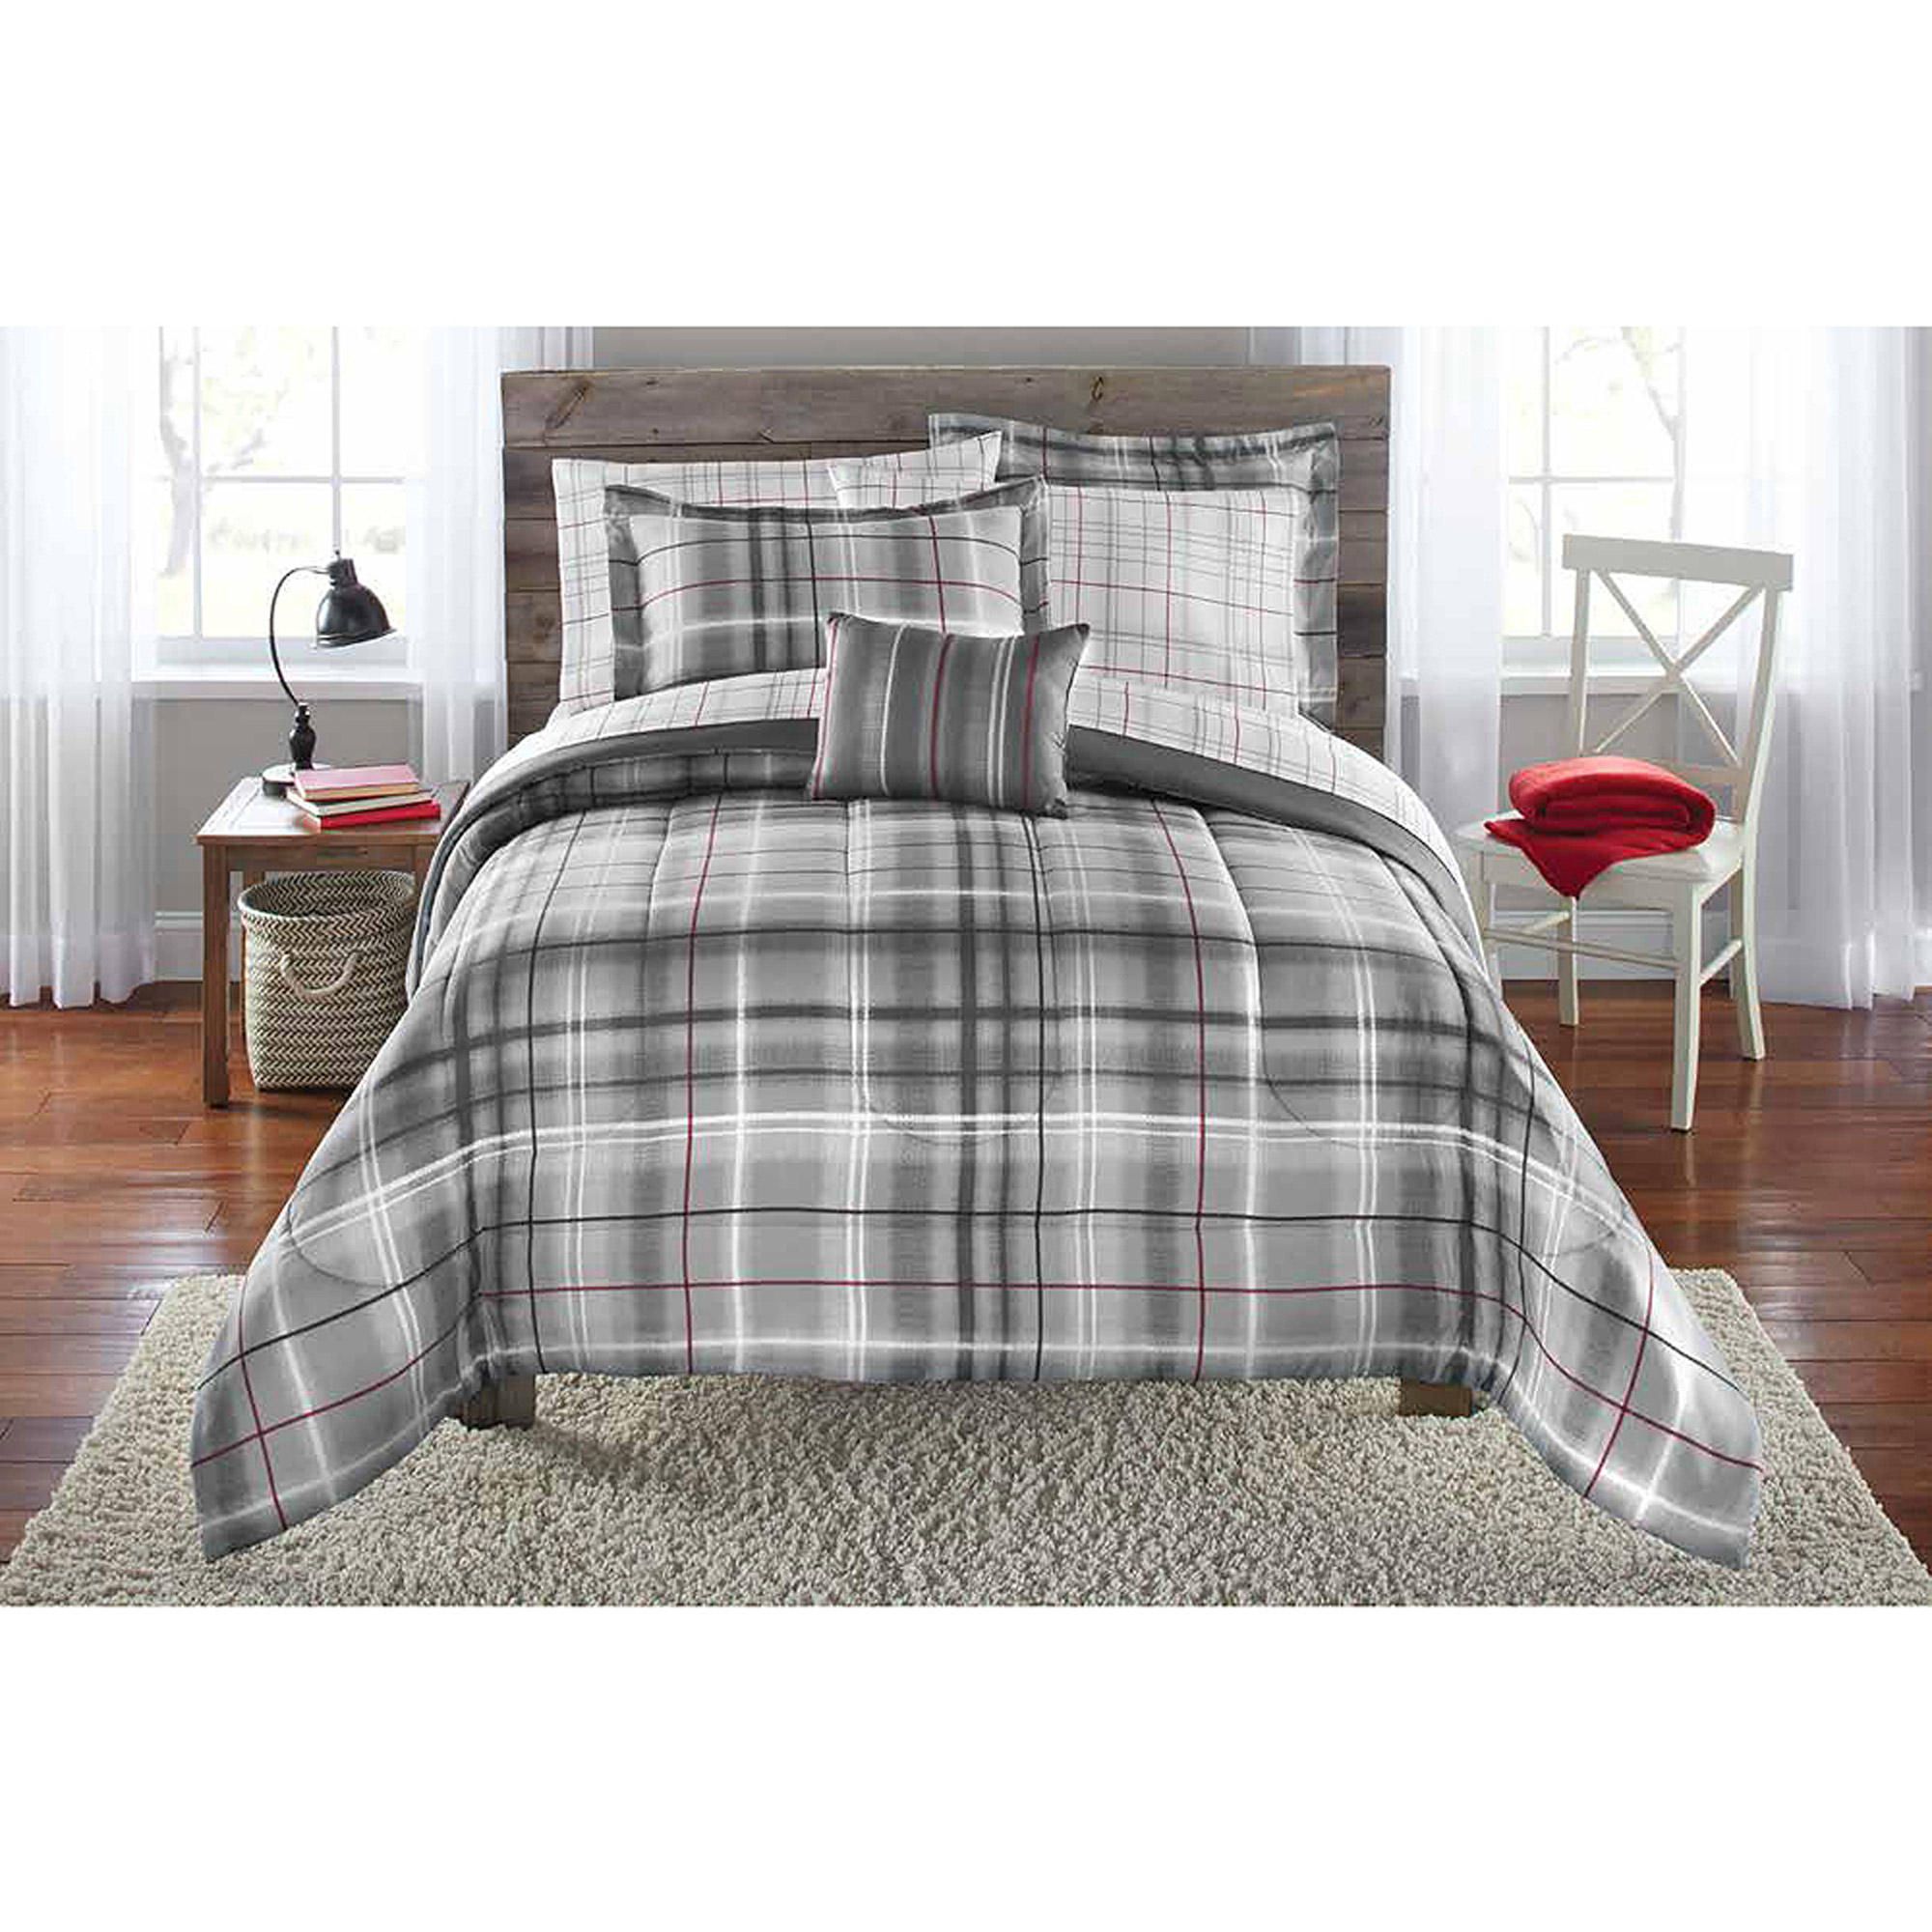 queen bedroom comforter sets. Elegant plaid comforter with rugs and wooden floor plus headboard  sidetable also pillows Bedroom Classy Plaid Comforter Furniture For Bedding Sets Ideas